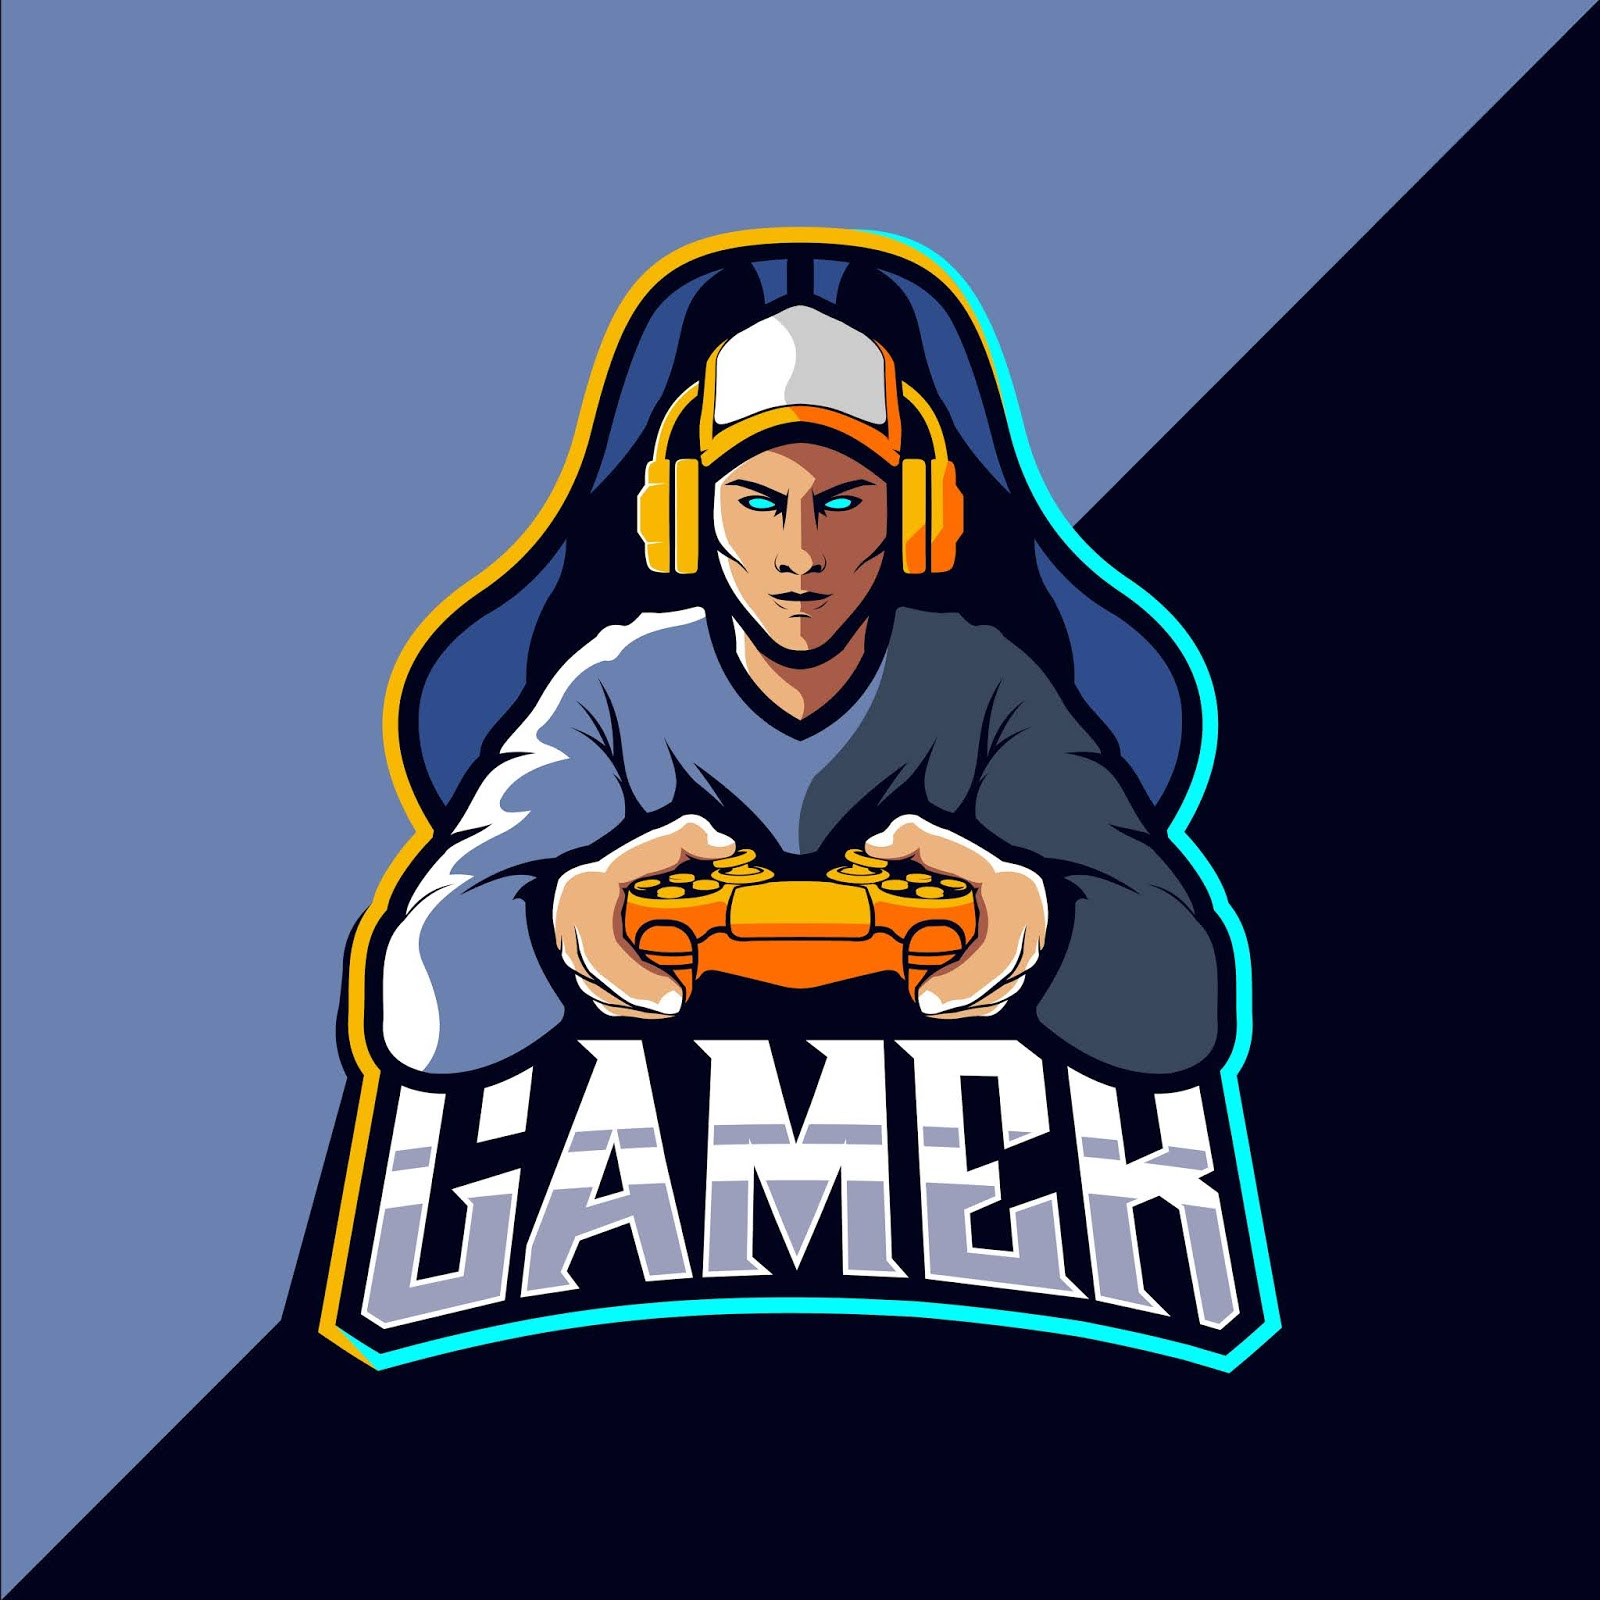 Gamer Esport Logo Design Free Download Vector CDR, AI, EPS and PNG Formats